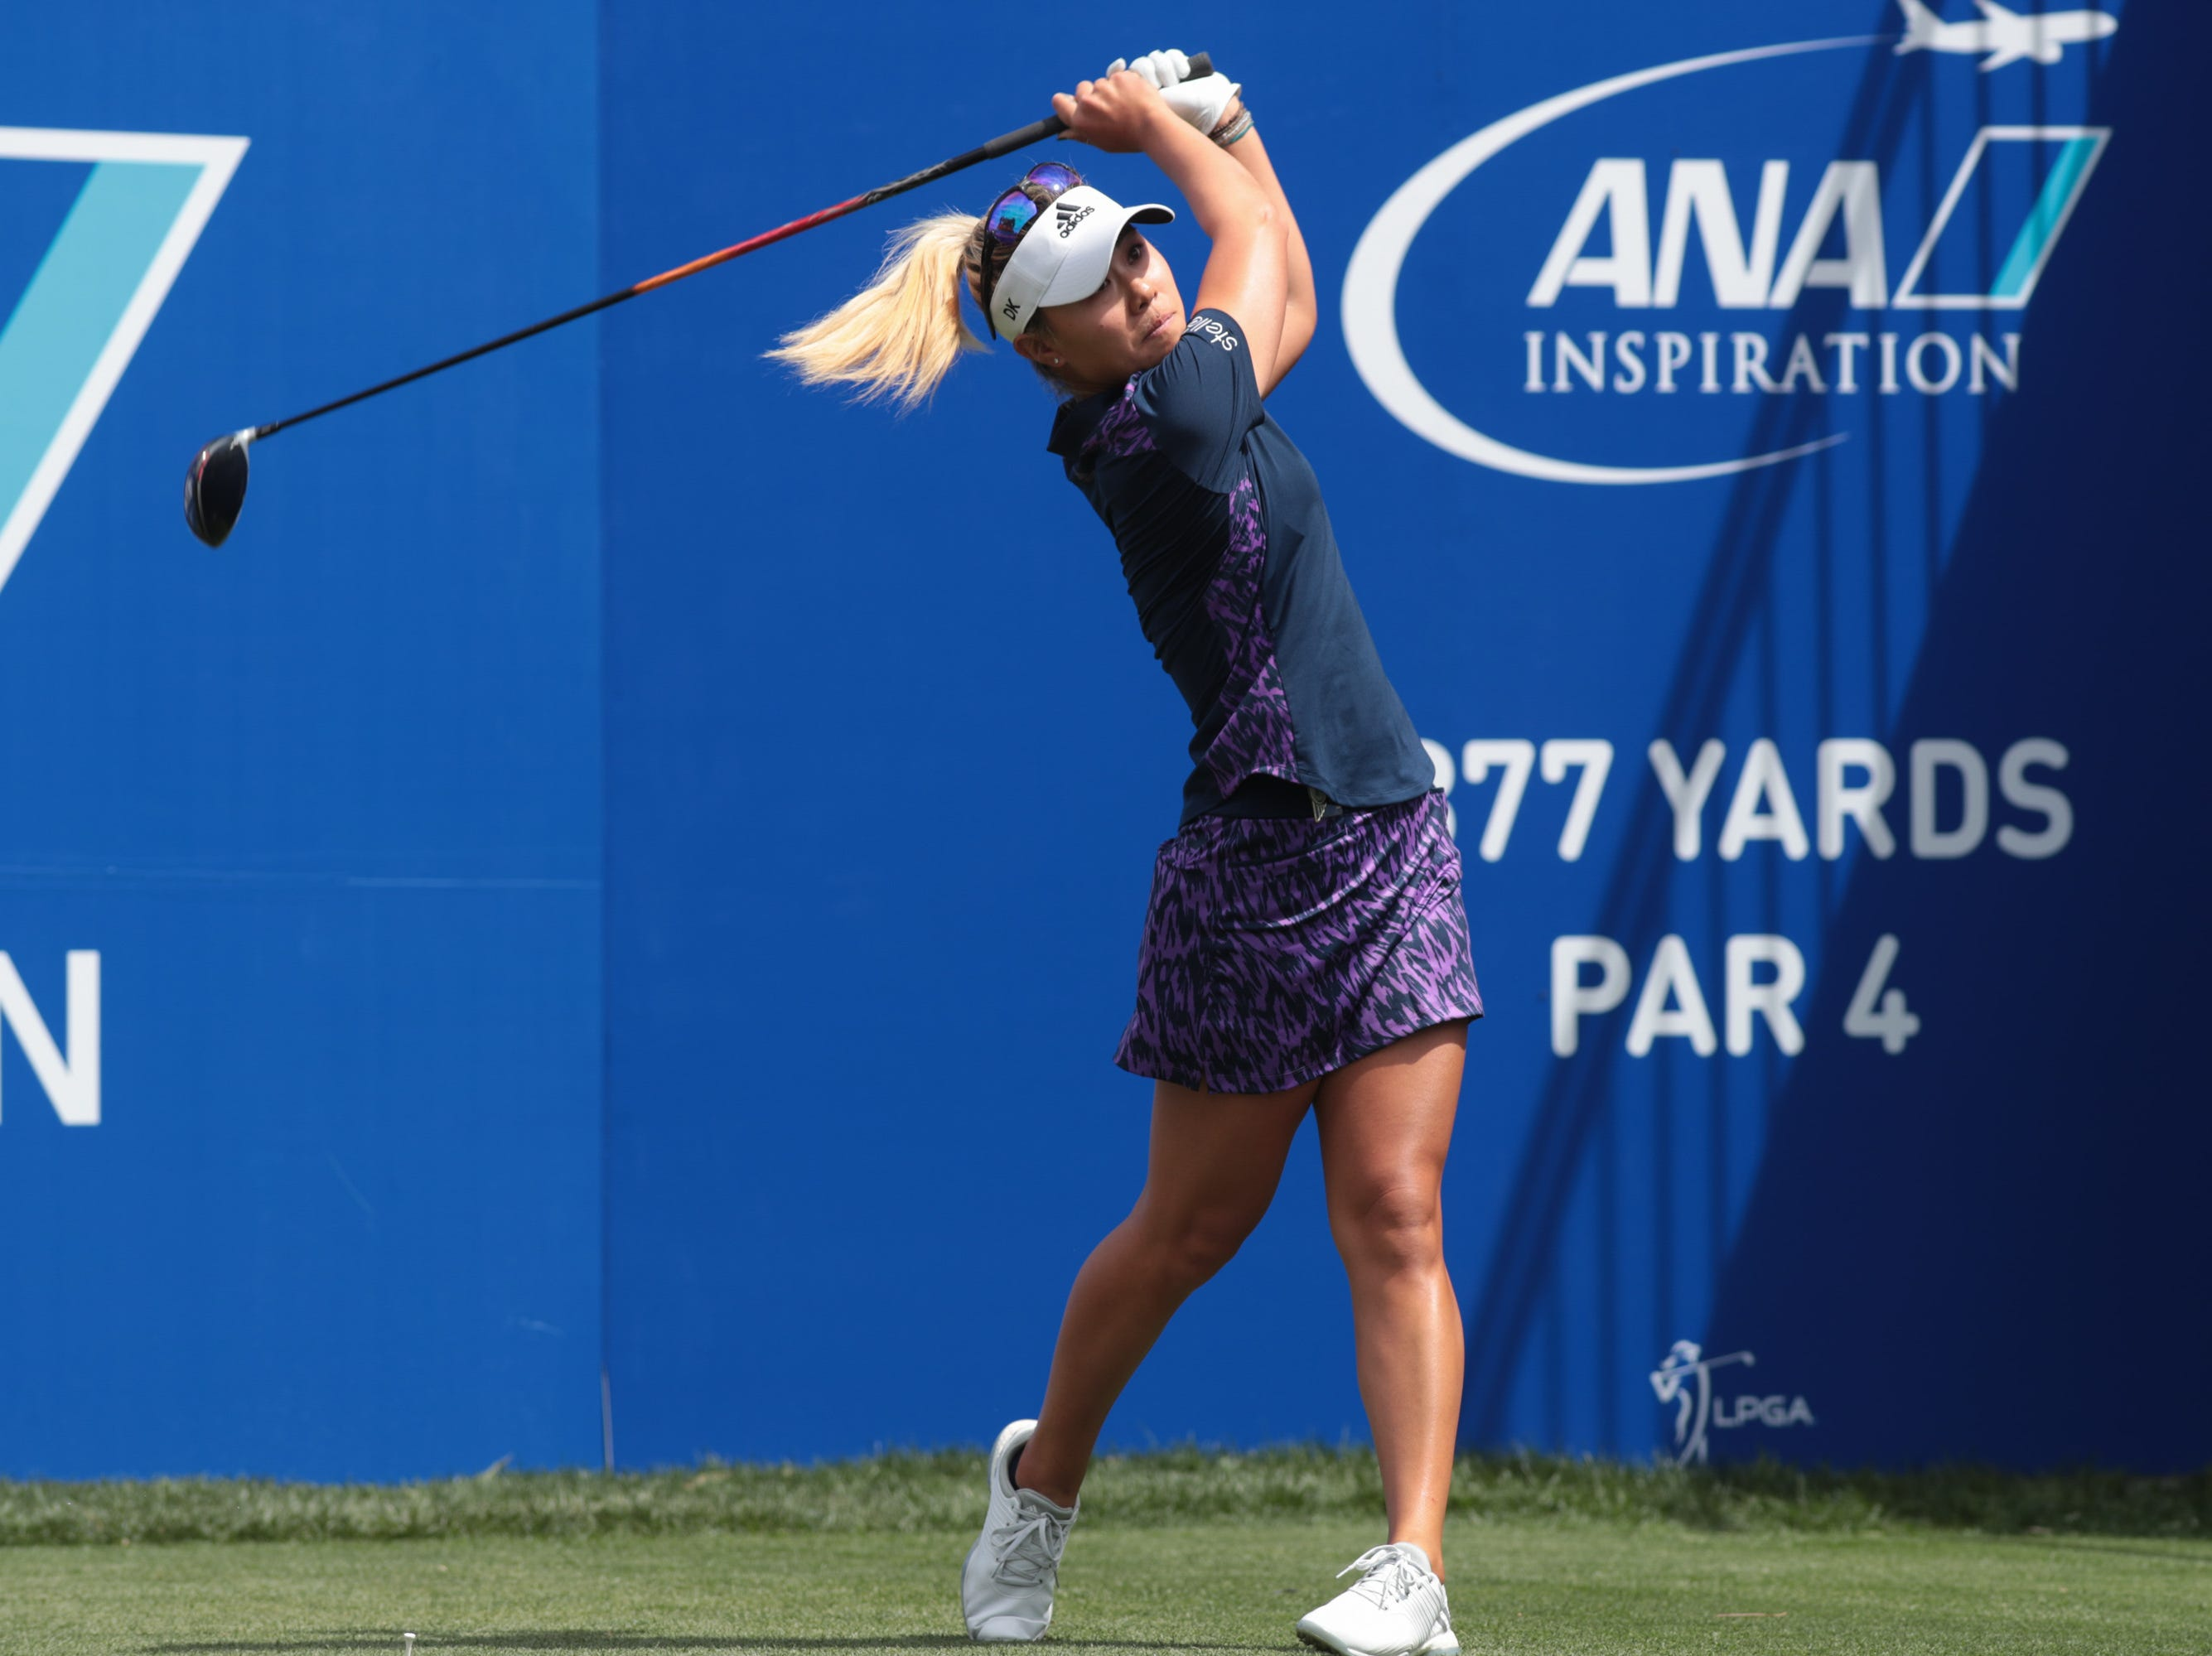 Danielle Kang tees off on the first hole of the Dinah Shore Course at the ANA Inspiration, Rancho Mirage, Calif., April 6, 2019.